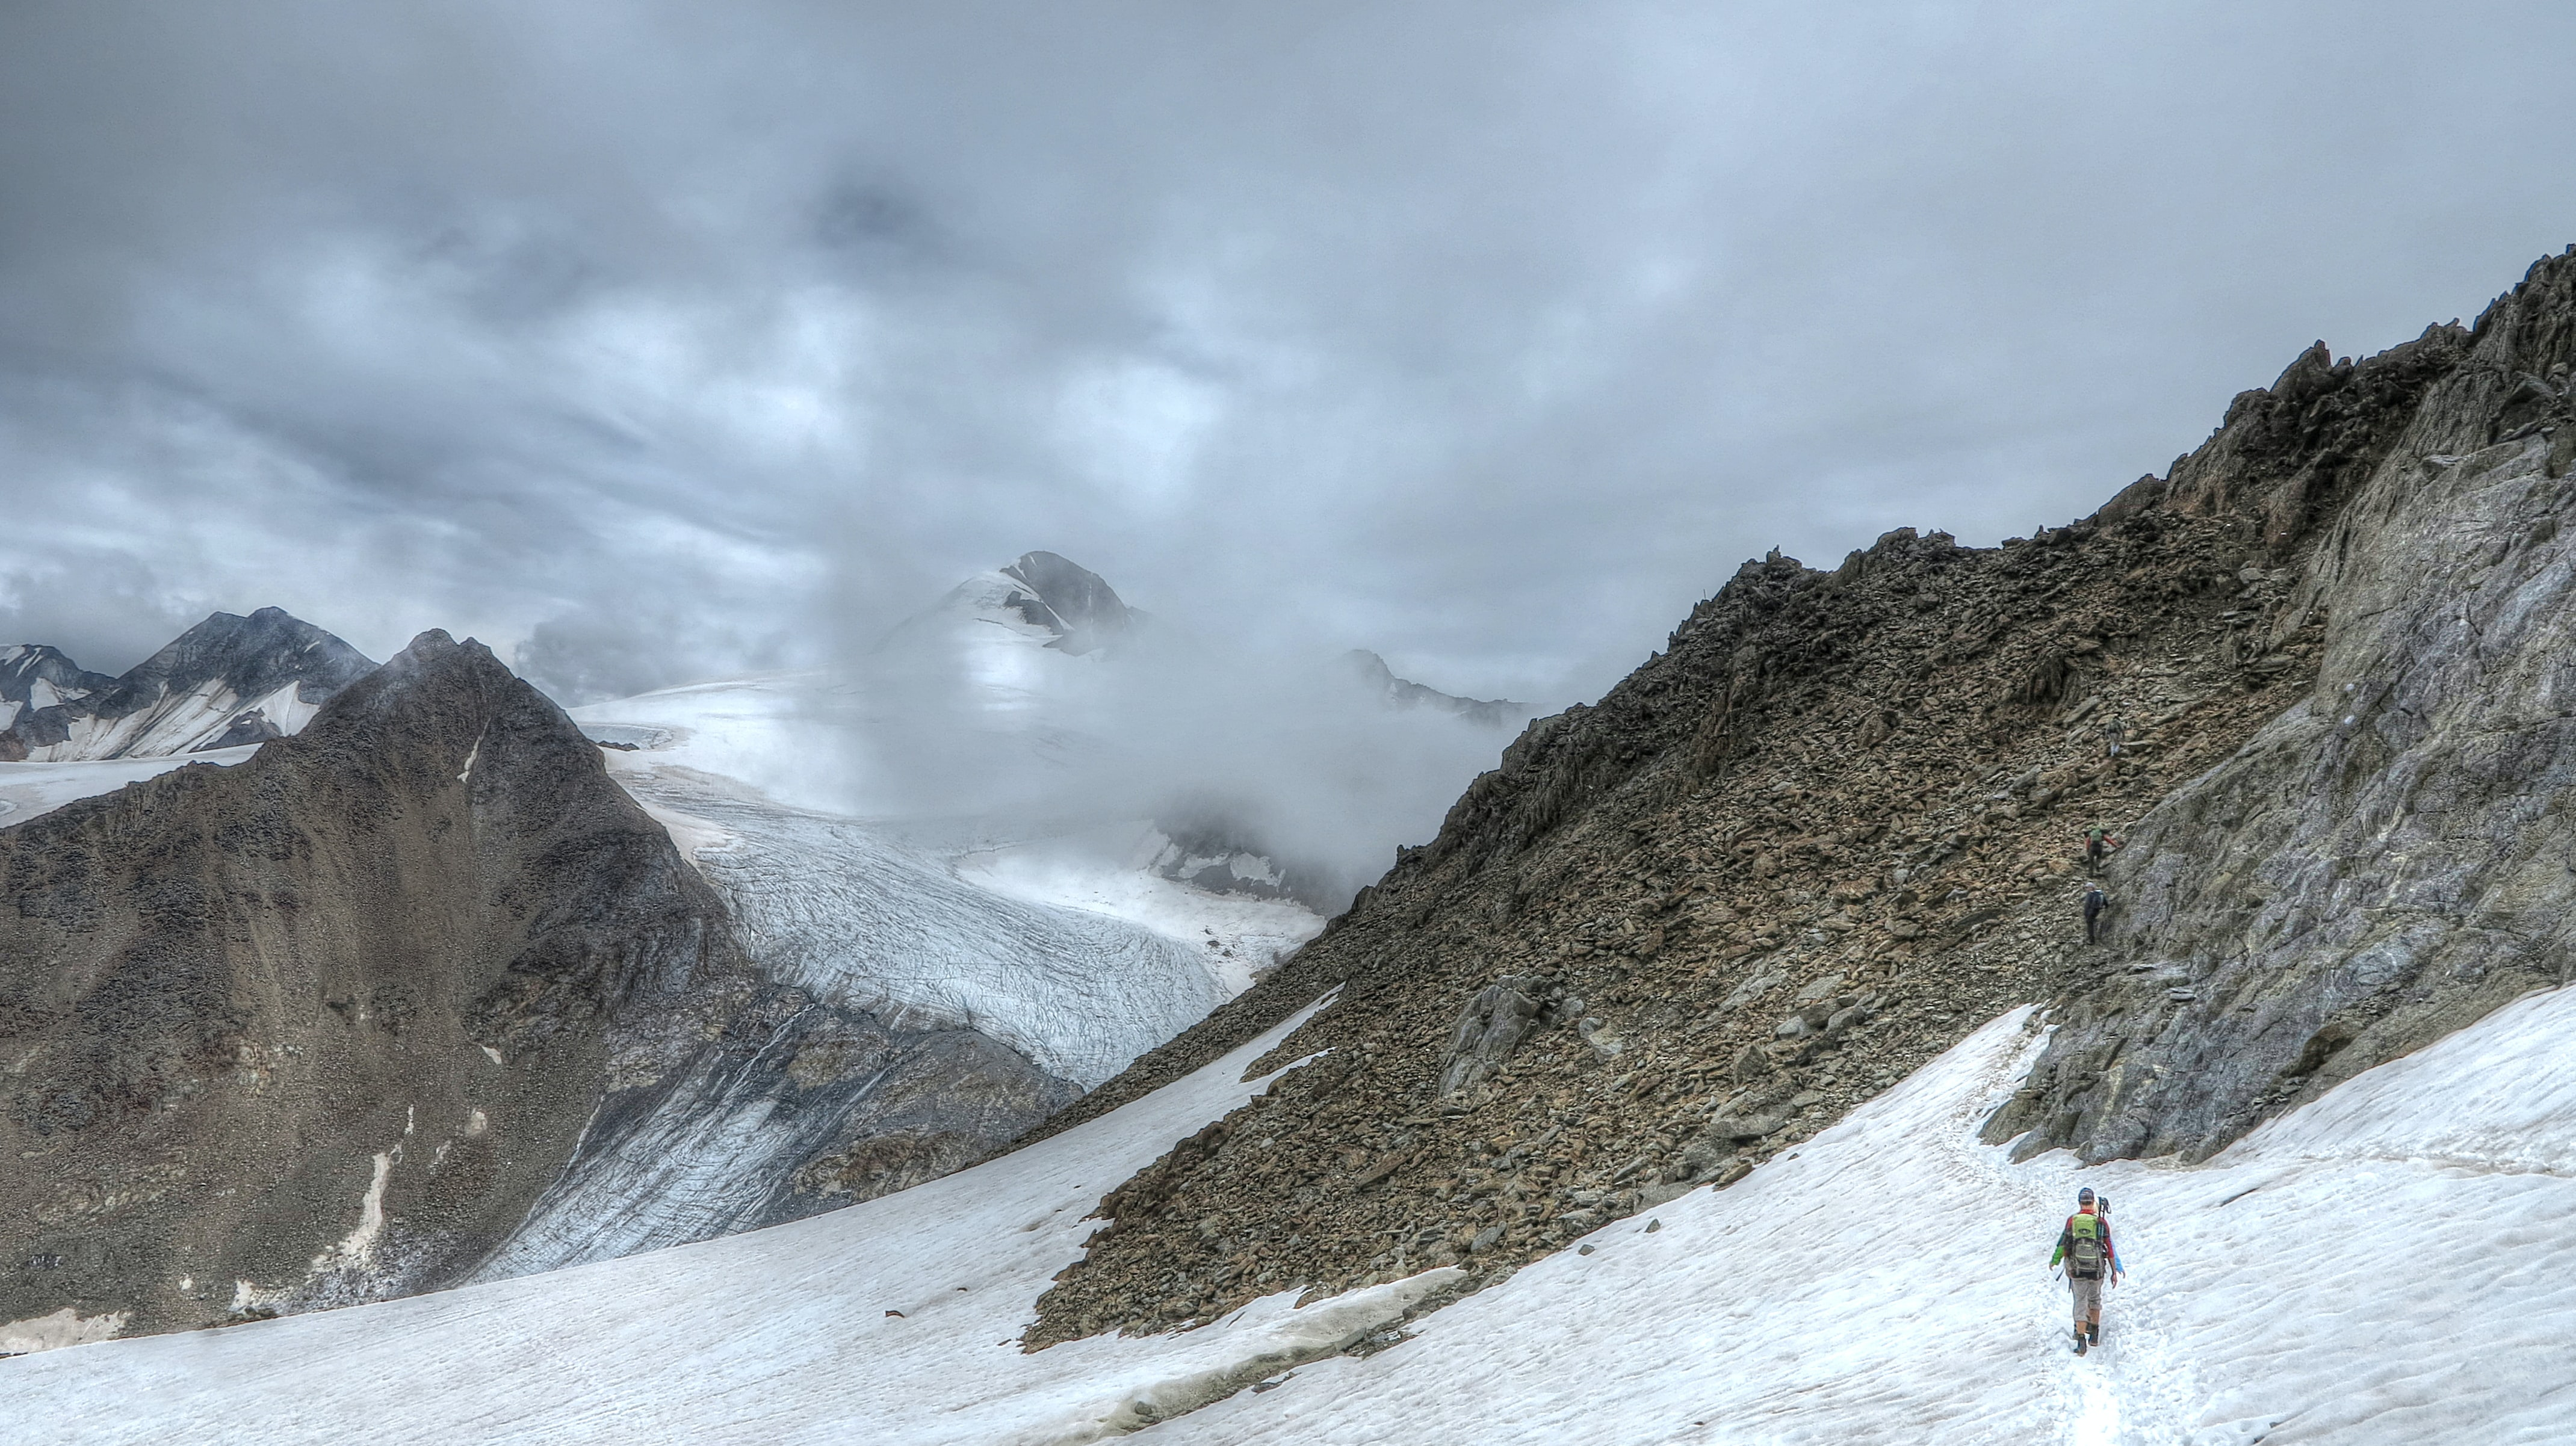 A hiker walking on snow covered mountains with a dark cloudy sky in Similaun.